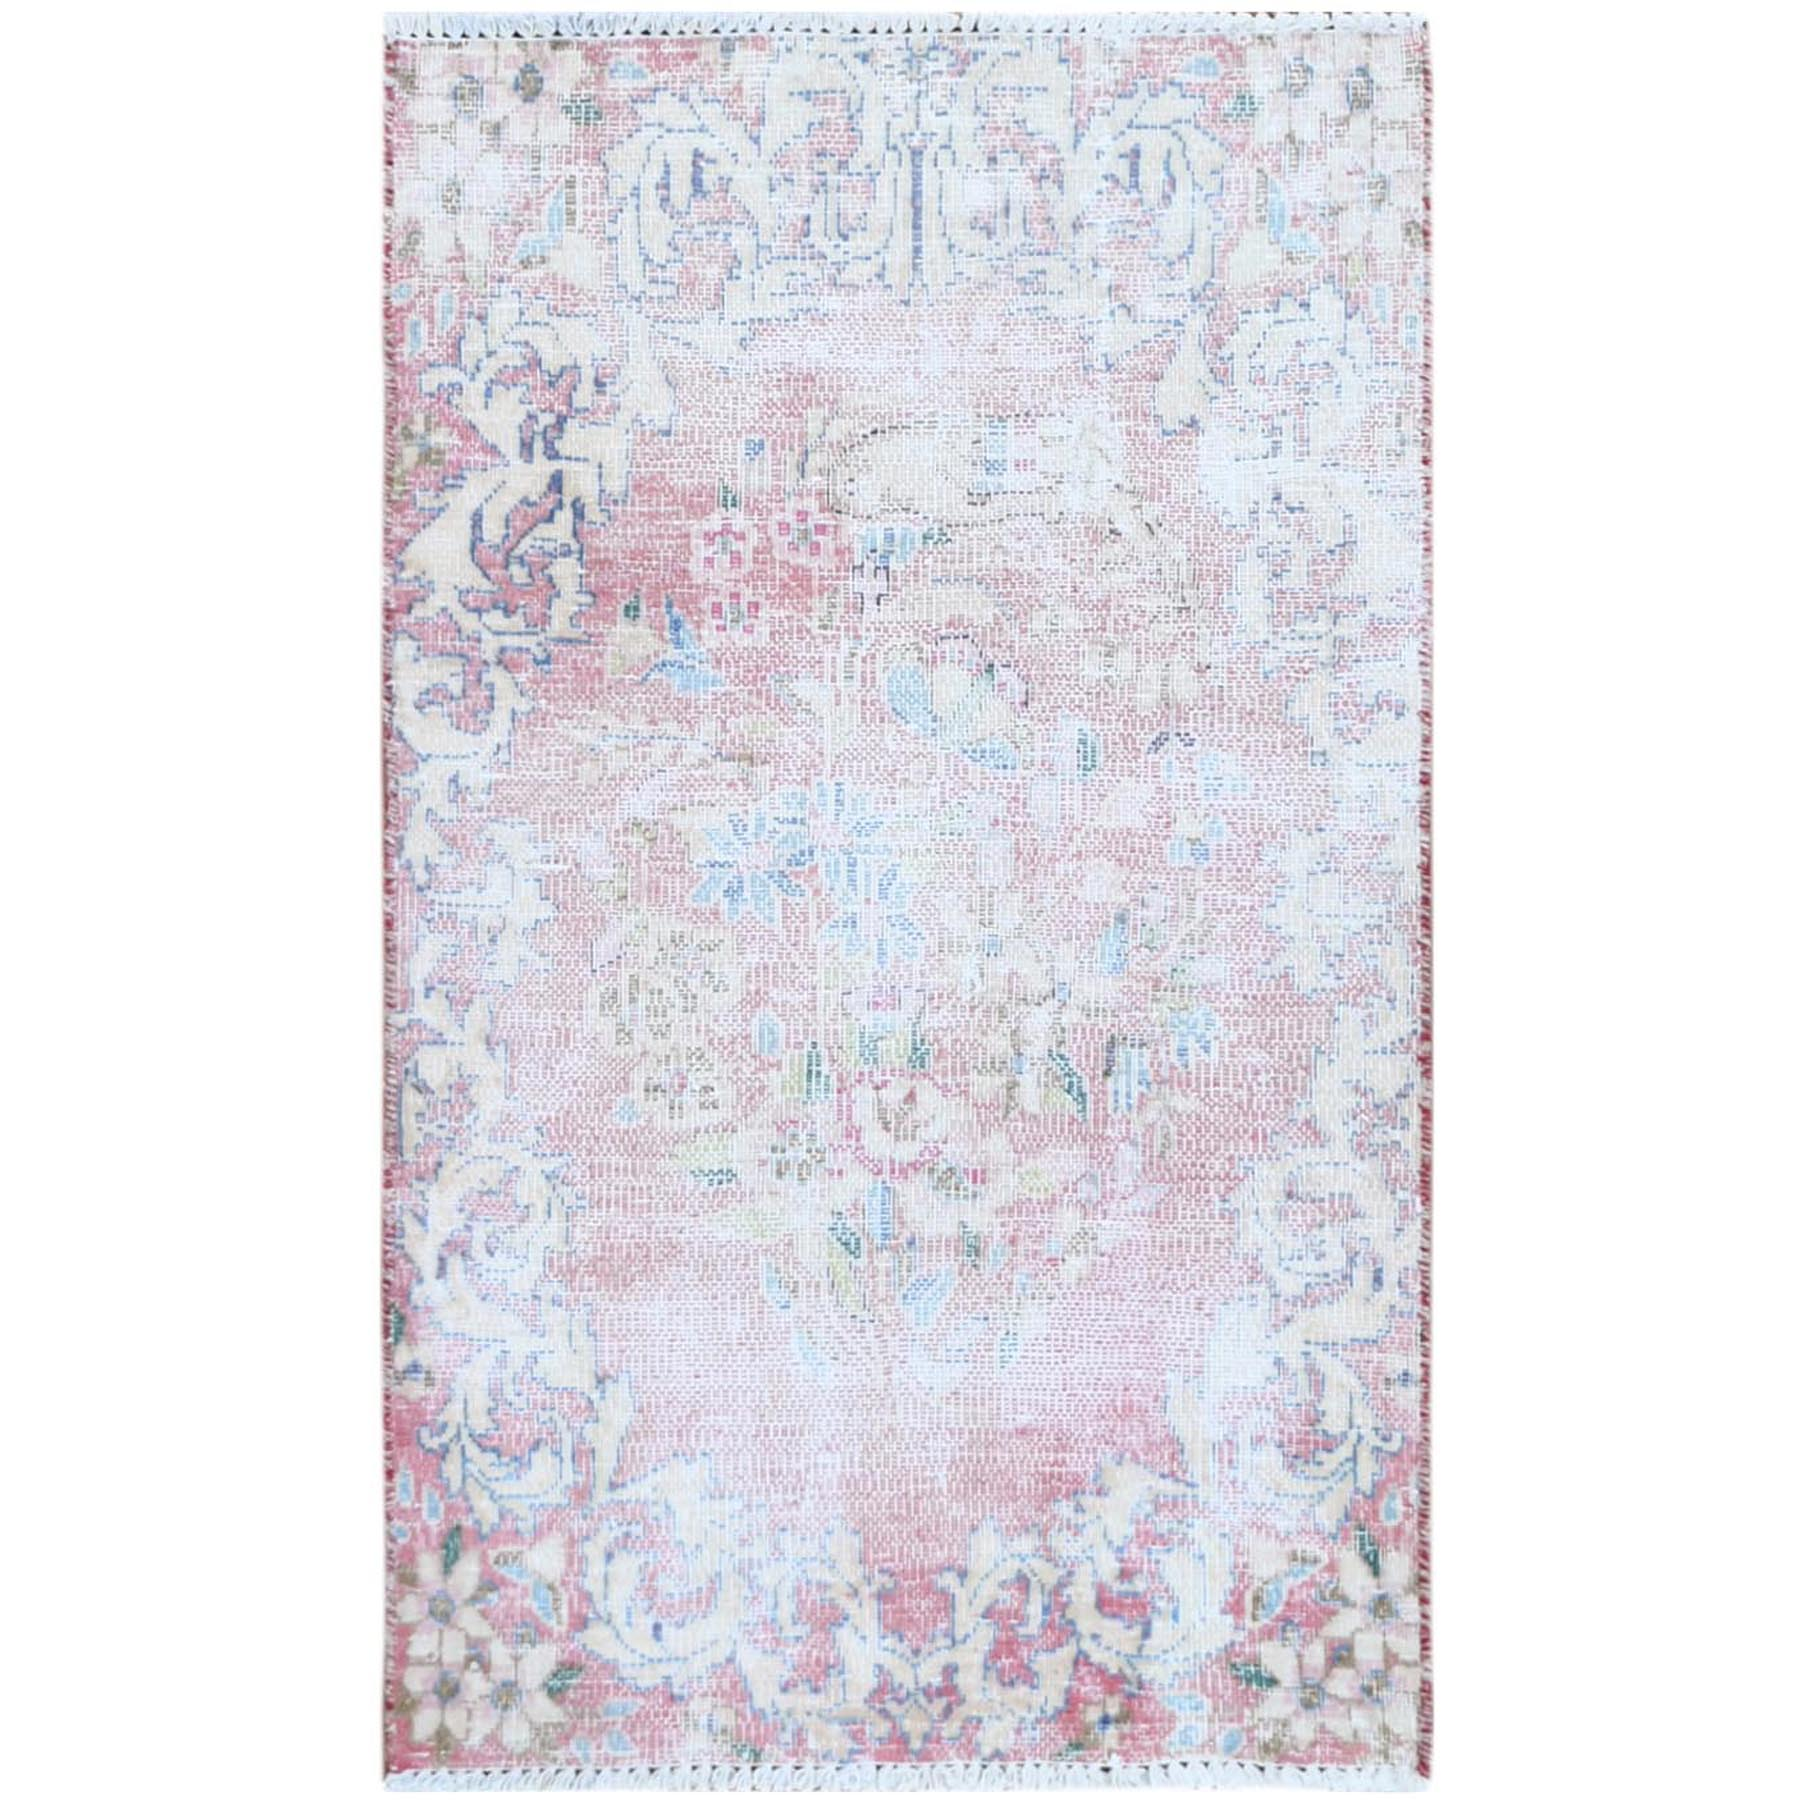 Overdyed & Vintage Rugs LUV544149